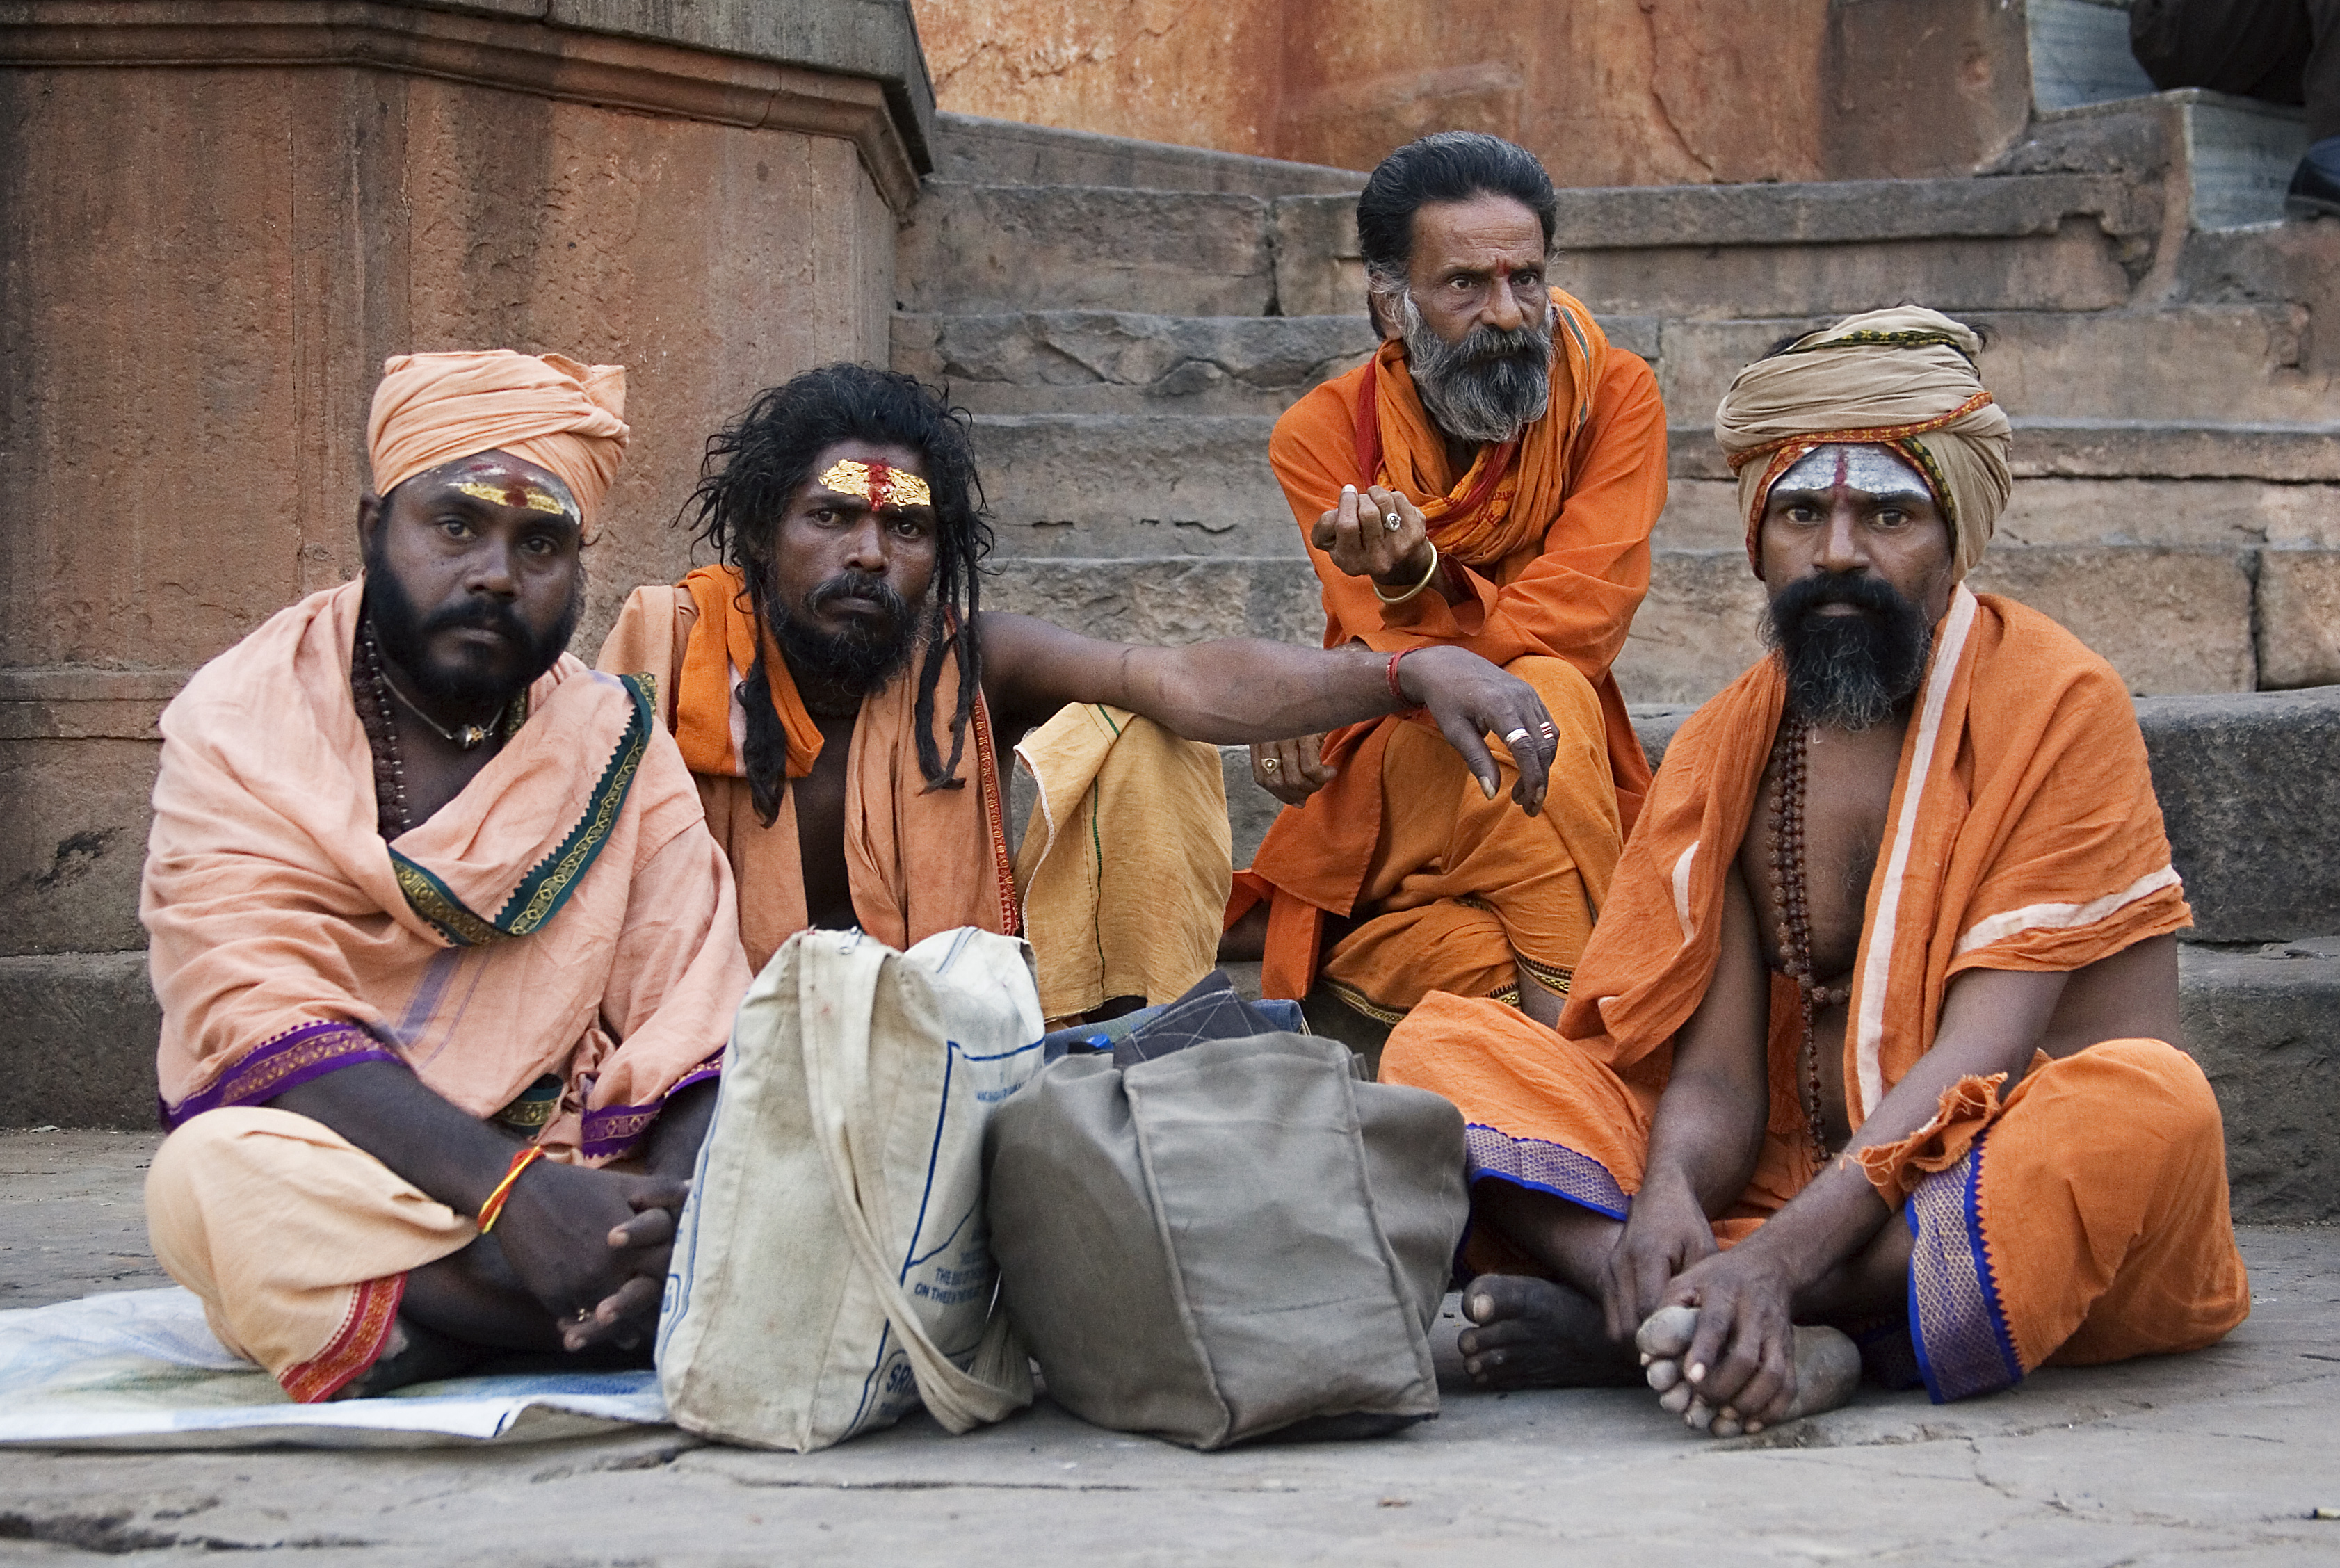 Sadhus Of India http://en.wikipedia.org/wiki/File:India_-_Varanasi_Sadhus_-_1276.jpg